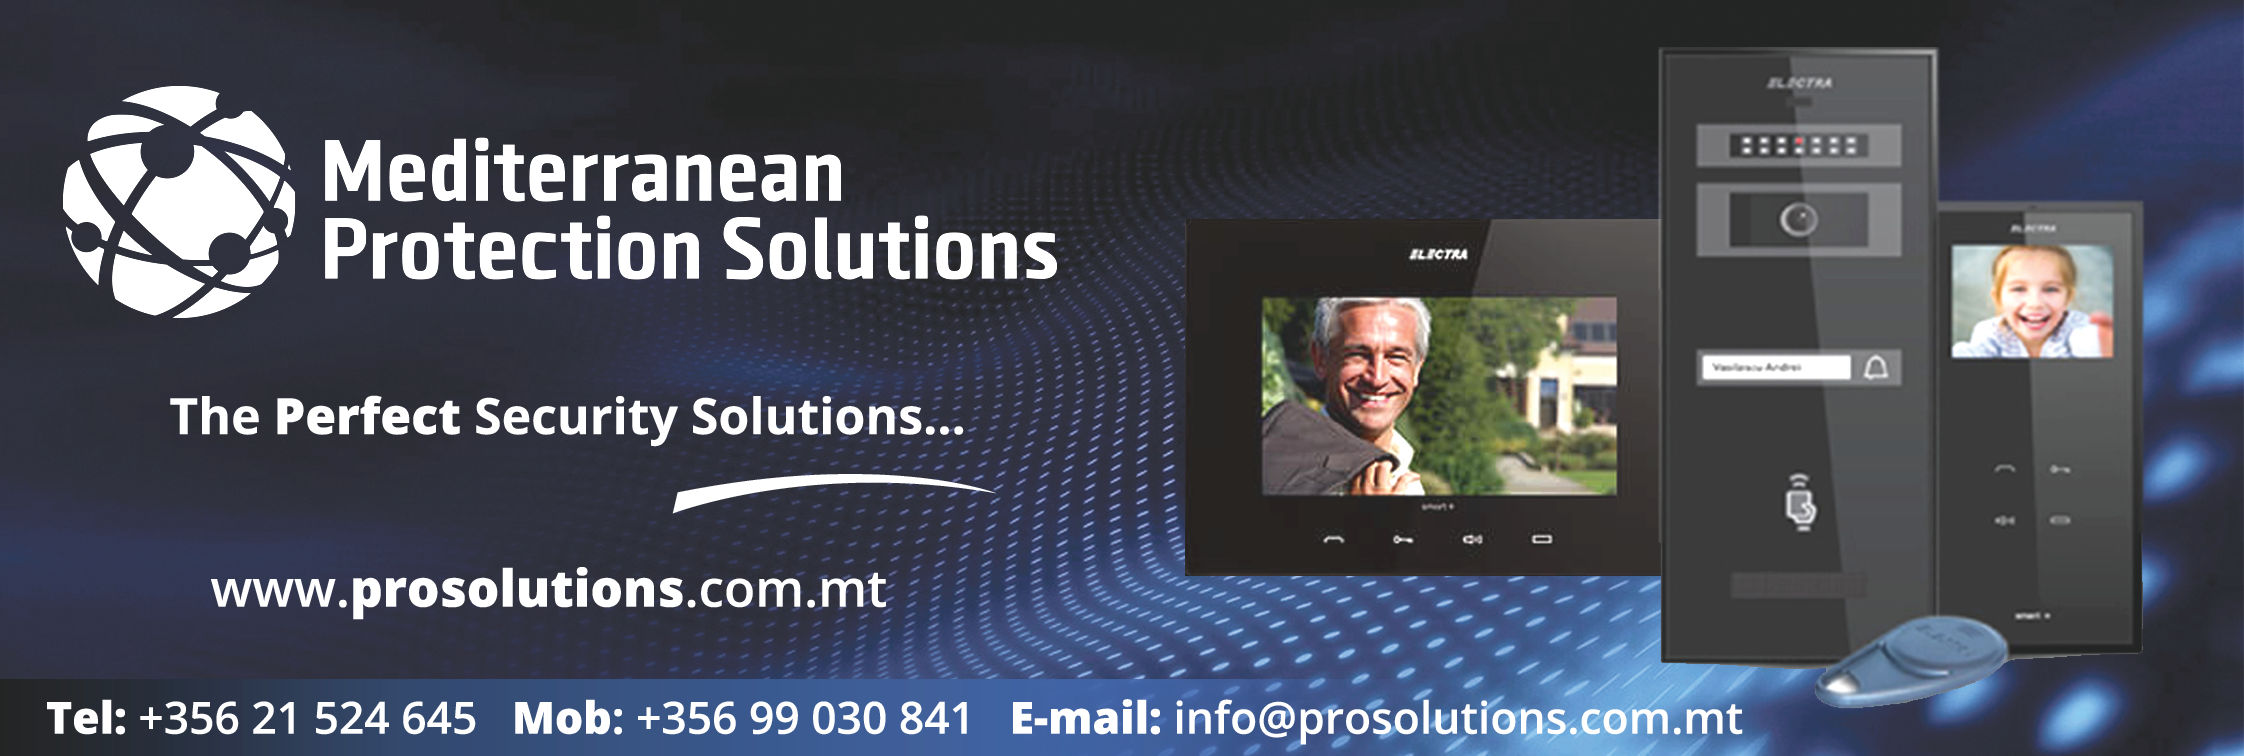 Mediterranean Protection Solutions - Hall Porters